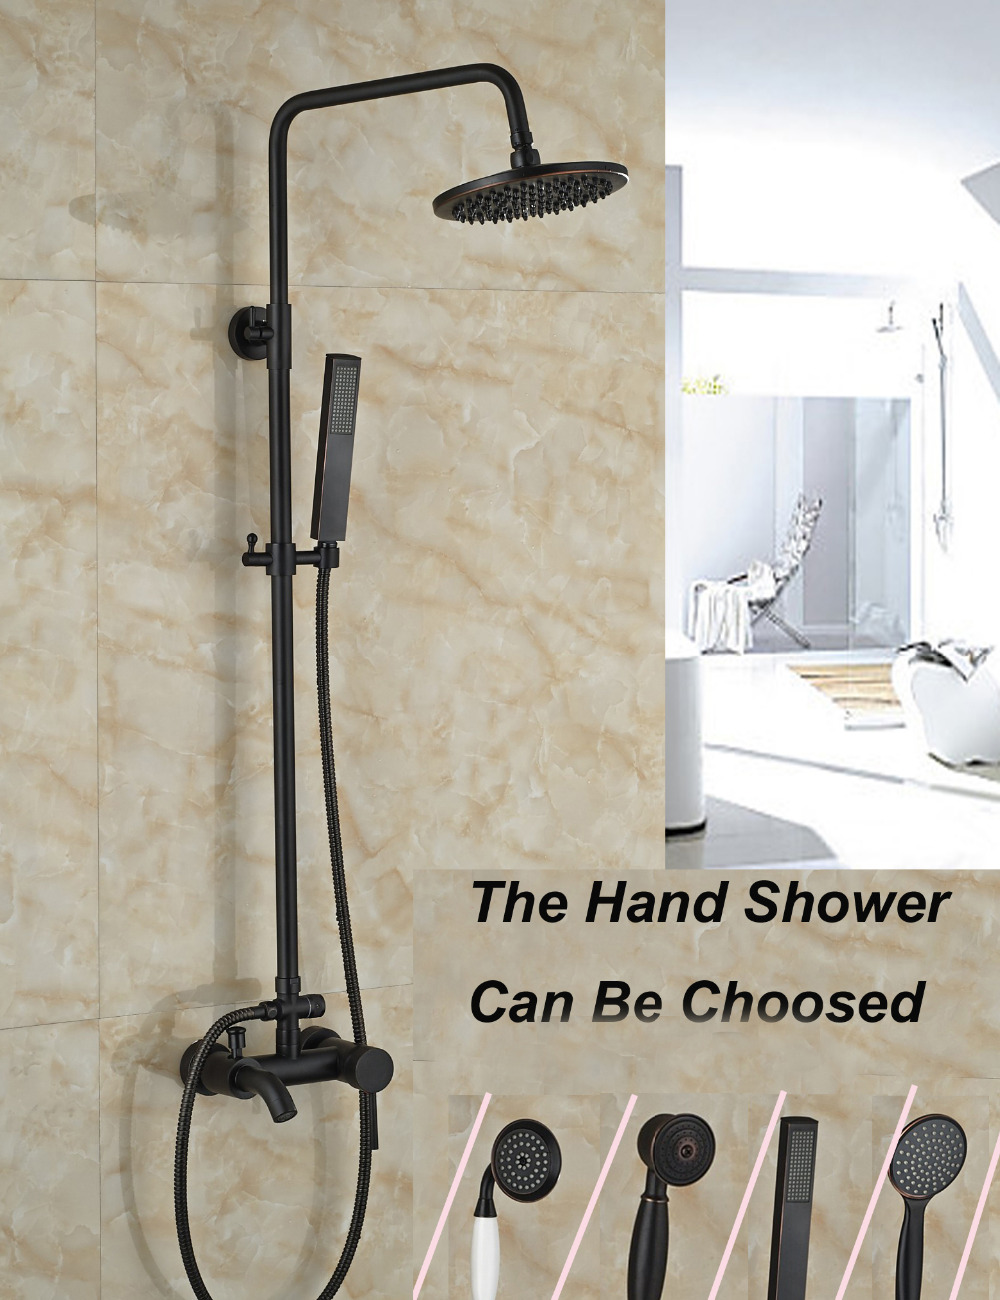 Wholesale And Retail Wall Mounted 8 Round Rain Shower Head Faucet Valve Mixer Tap W/ Hand Shower Tub Spout Mixer Tap